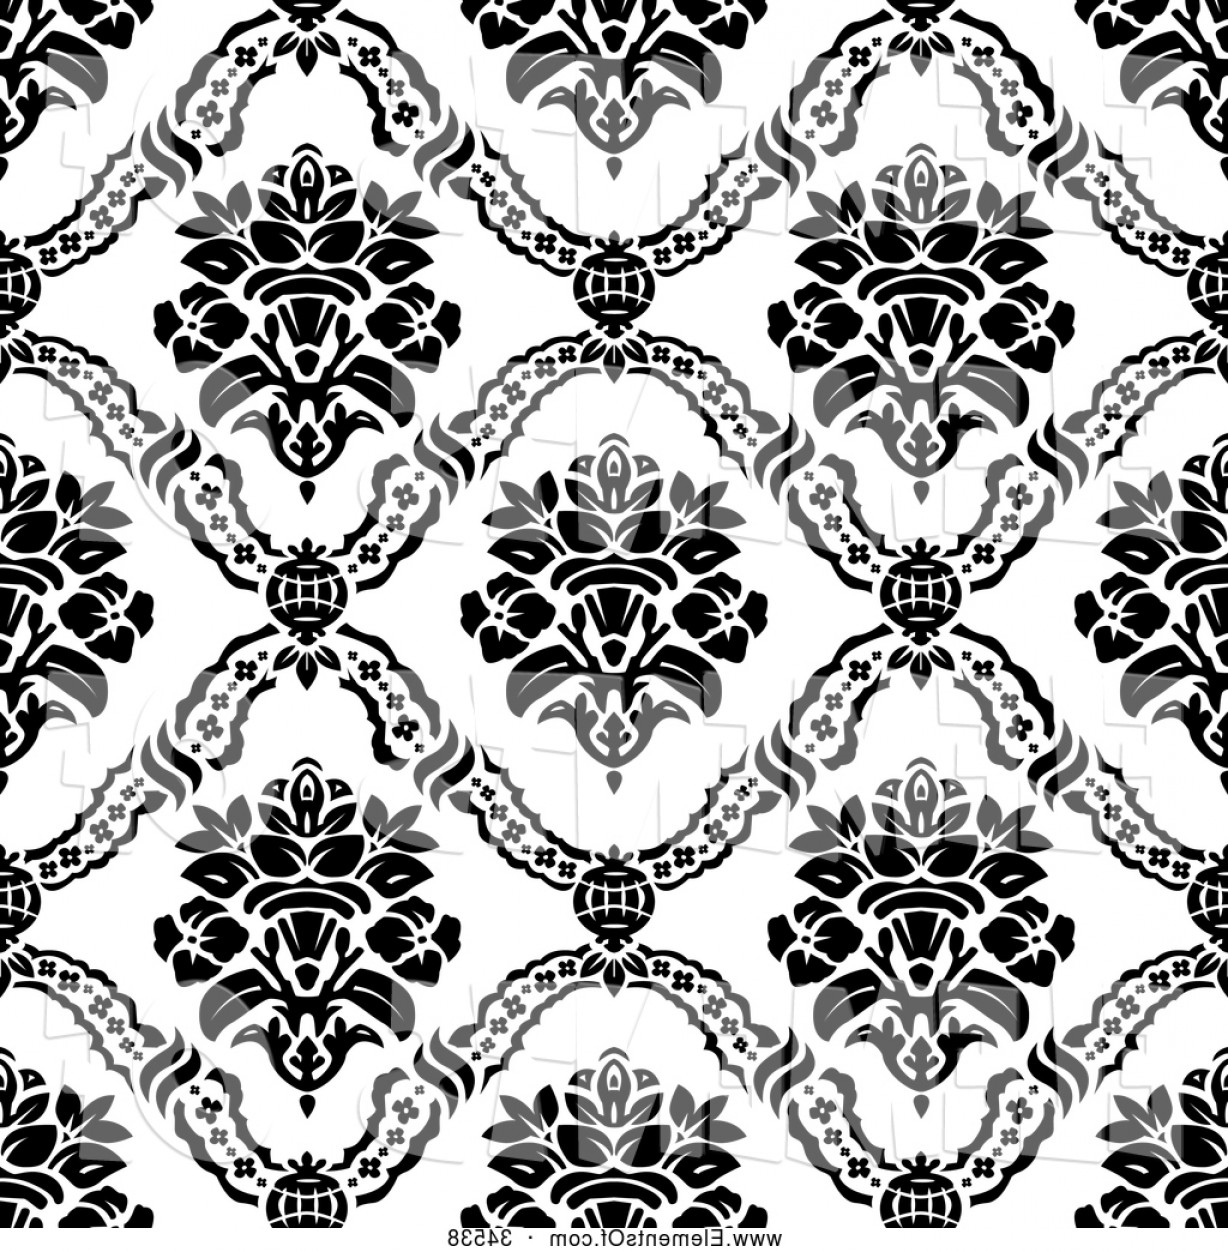 Damask Background Vector Art: Vector Illustration Of A Seamless Backgorund Of Black Floral Damask Patterns On White By Bestvector